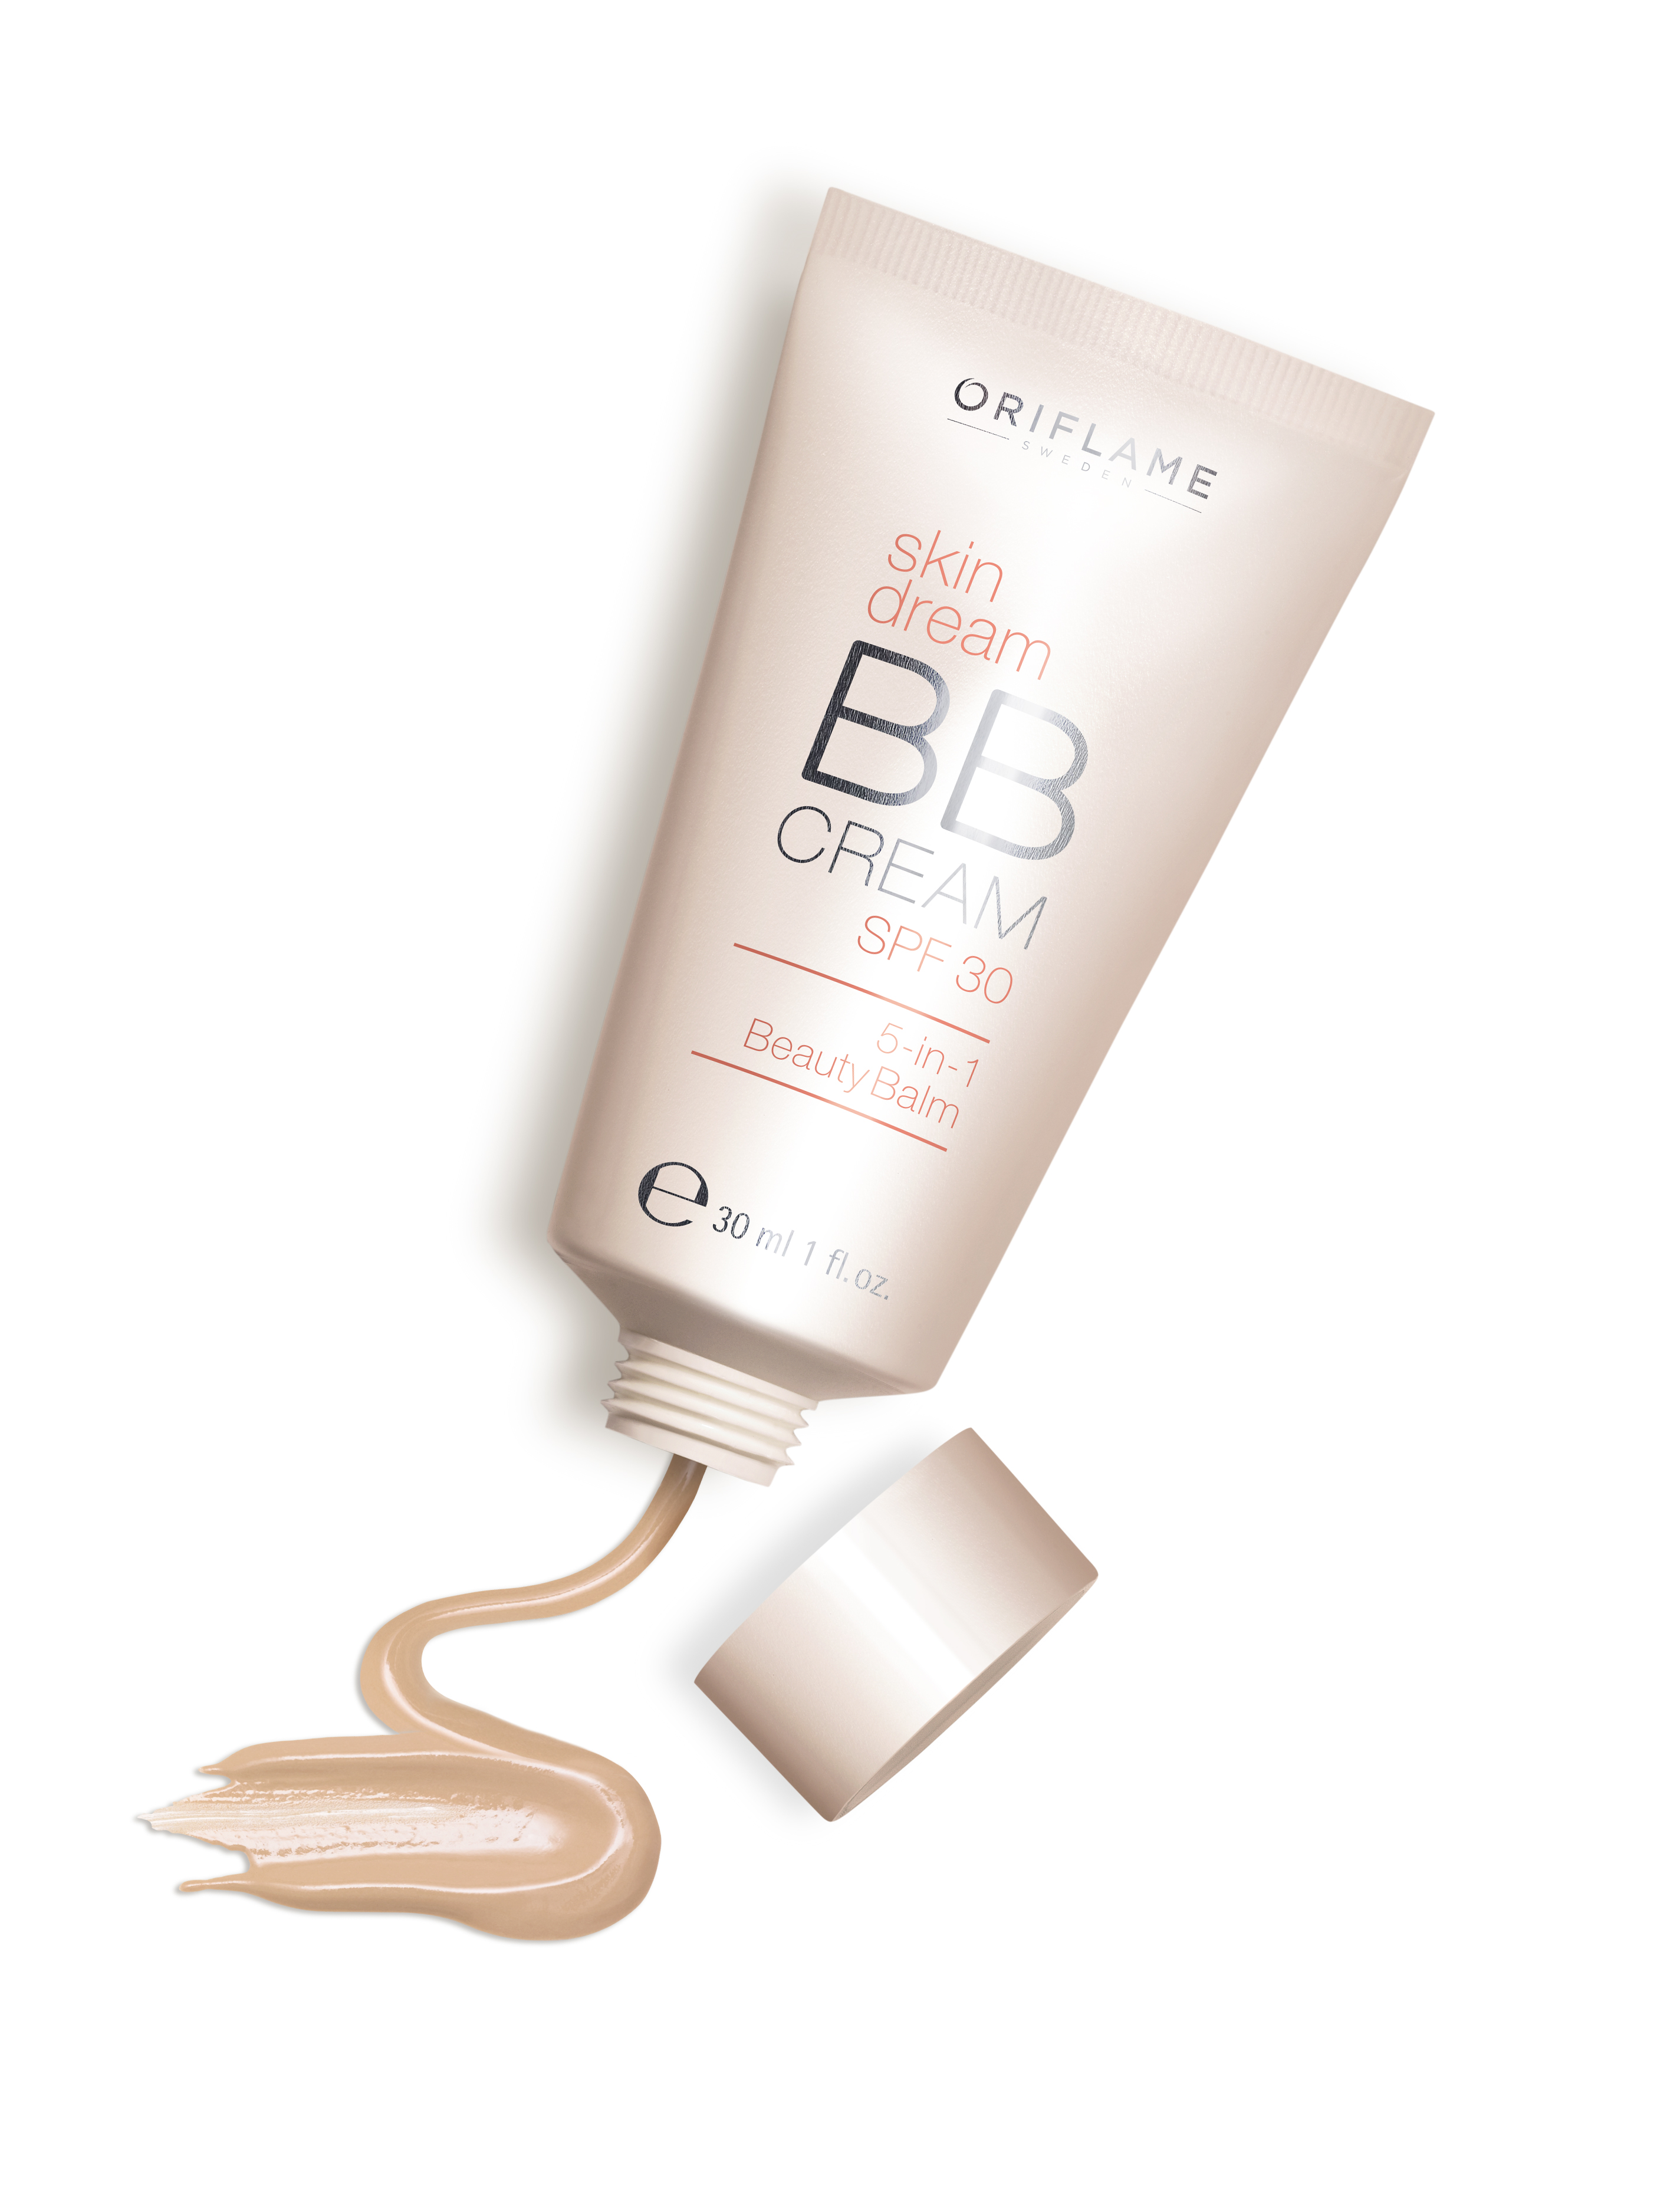 BB Skin Dream SPF 30 od Oriflame